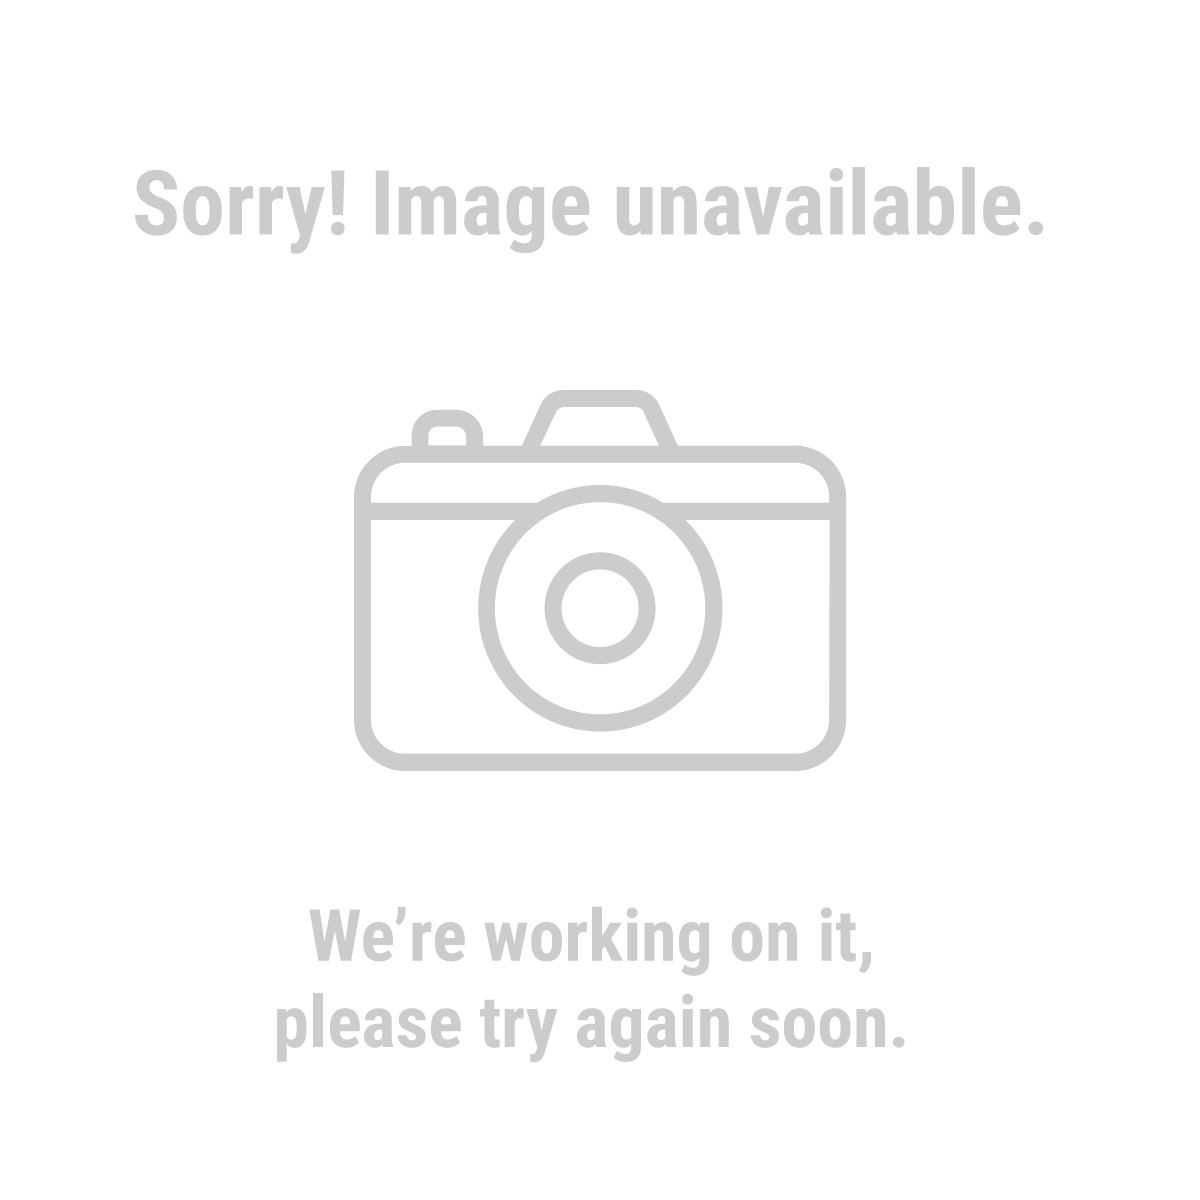 Predator Generators 69677 420cc, 8750 Watts Max/7000 Watts Rated Portable Generator - Certified for California